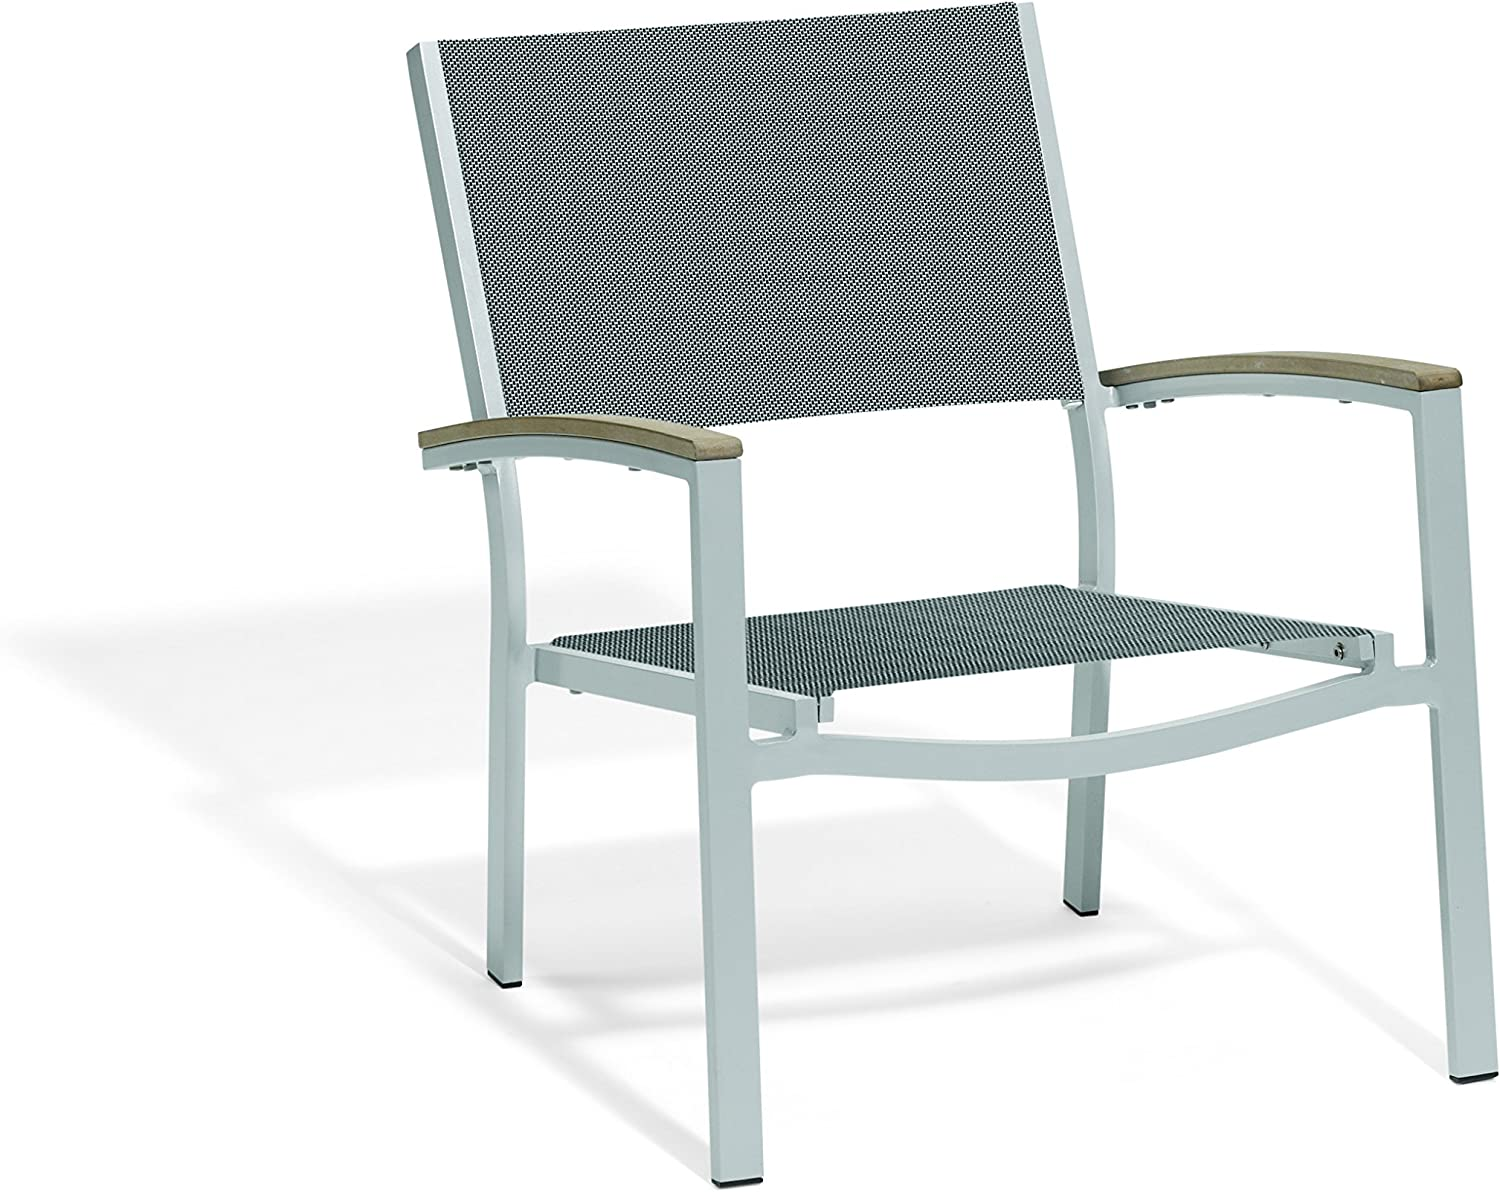 Oxford Garden – Travira Collection Chat Chair – Titanium Sling Seat – Tekwood Vintage Armcaps – Set of 2